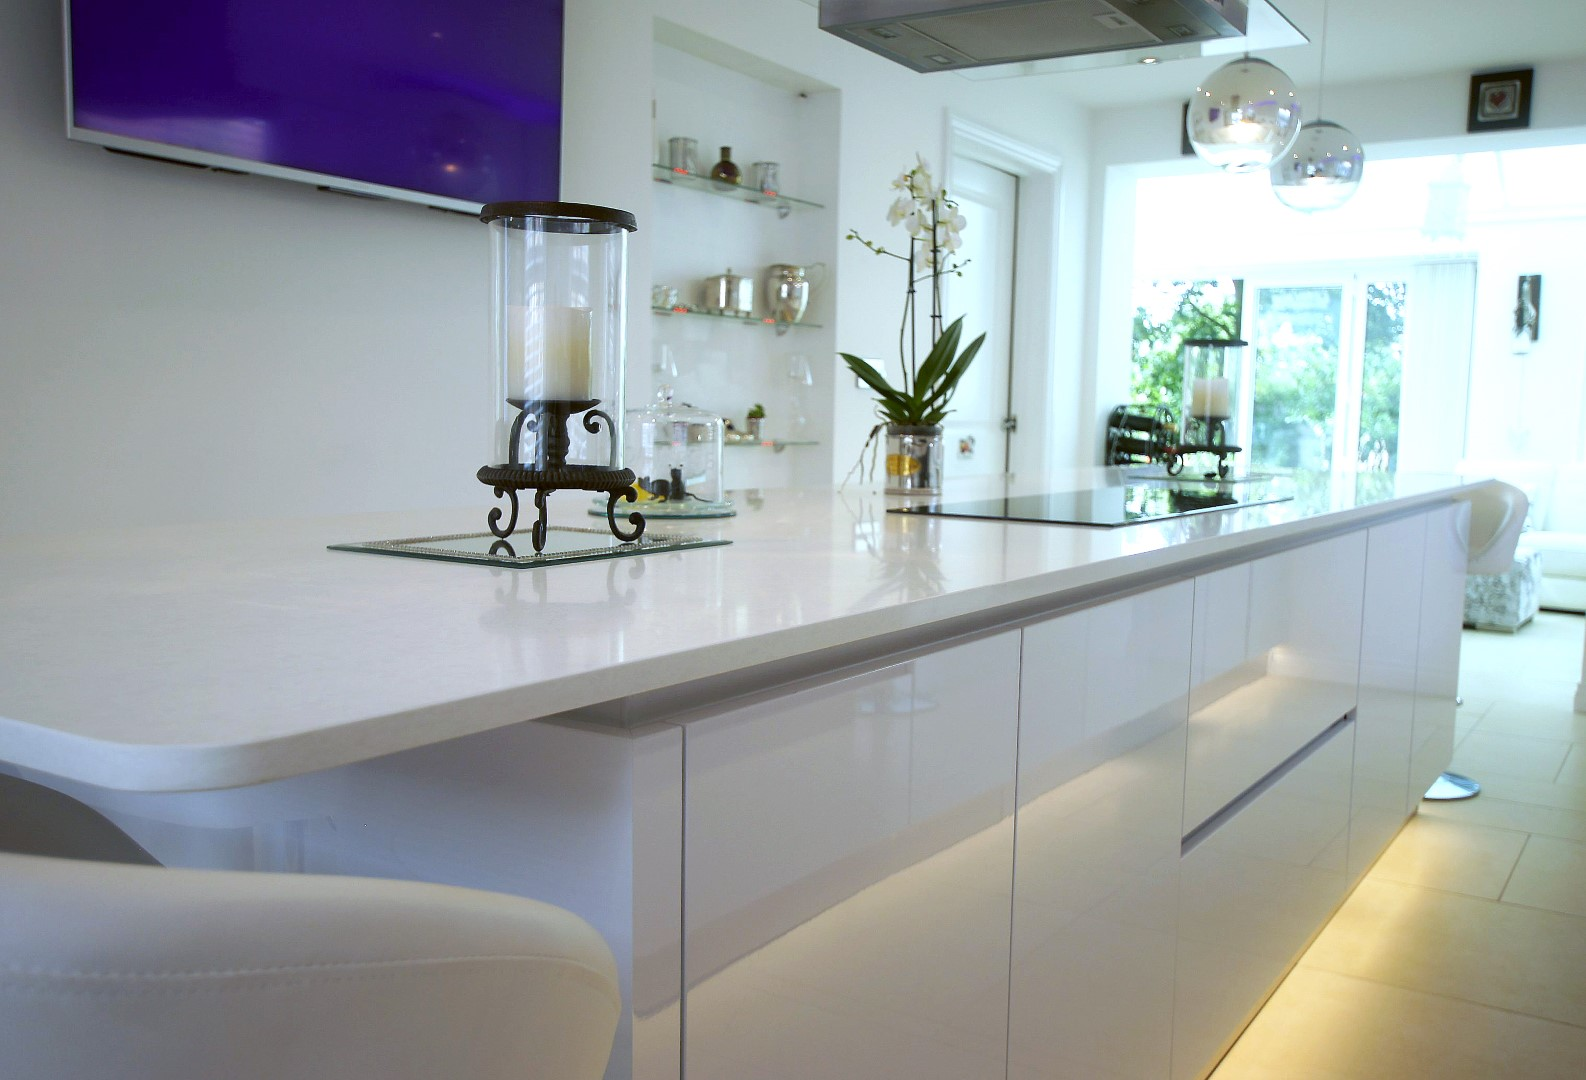 White High Gloss German Kitchen - Buntingford | Blax Kitchens Ltd